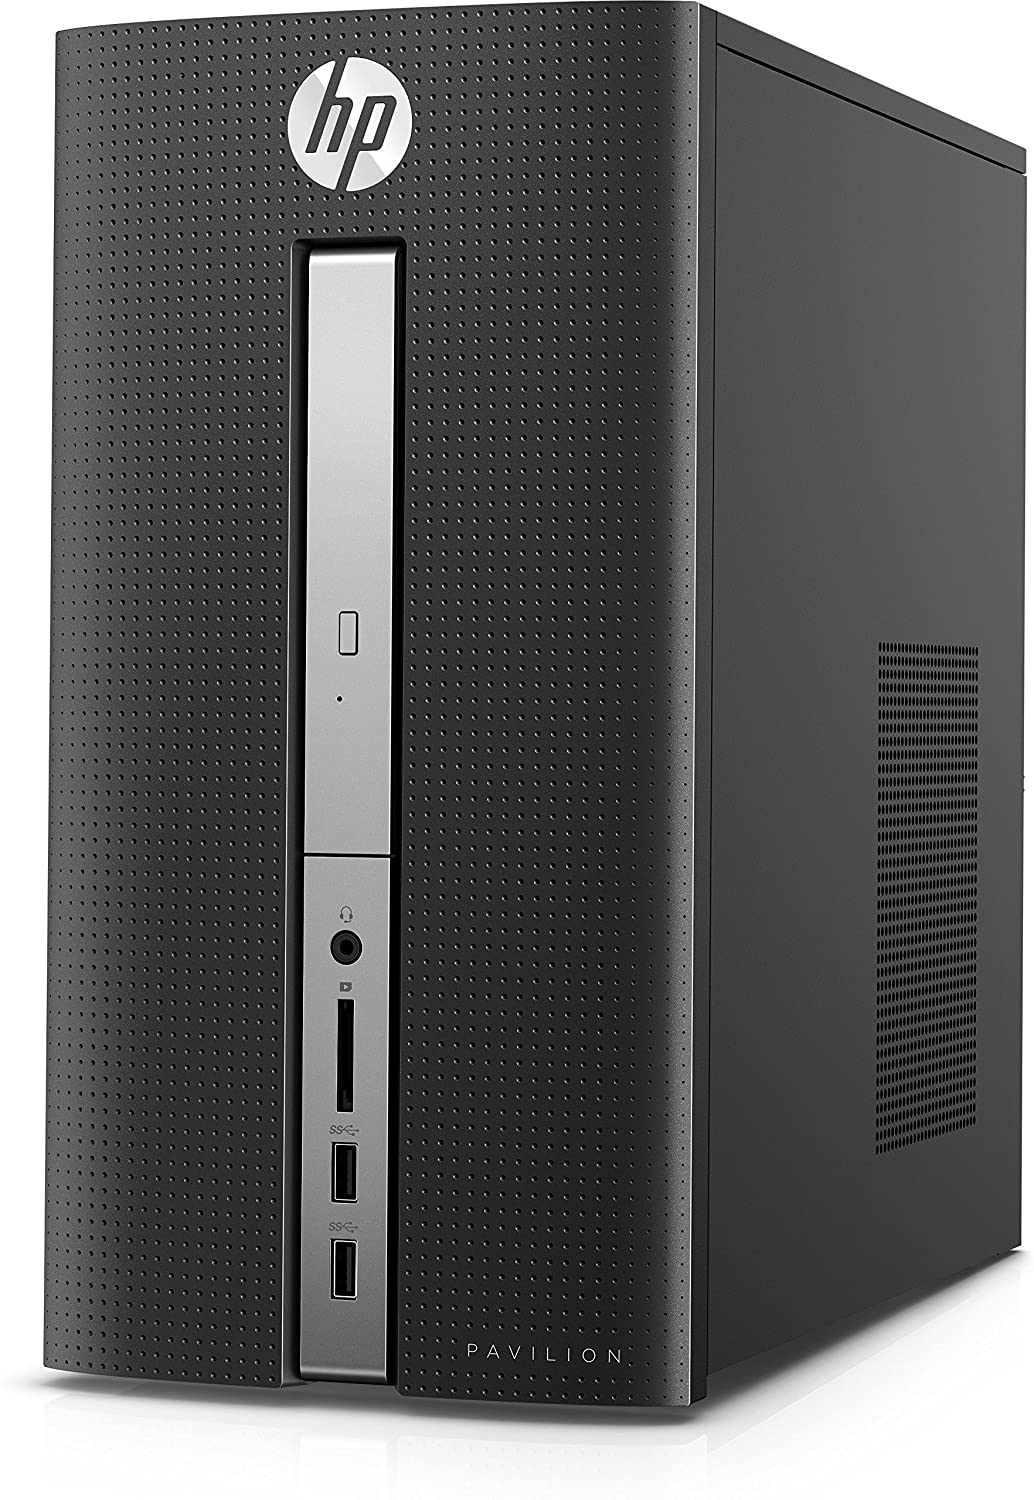 e7963df1a08ec6 Amazon.com  HP Pavilion 570-033w Desktop PC – Intel Core i7-7700, 3.6GHz,  16GB Ram, 2TB Hard Drive, Windows 10 with Keyboard and Mouse included ...